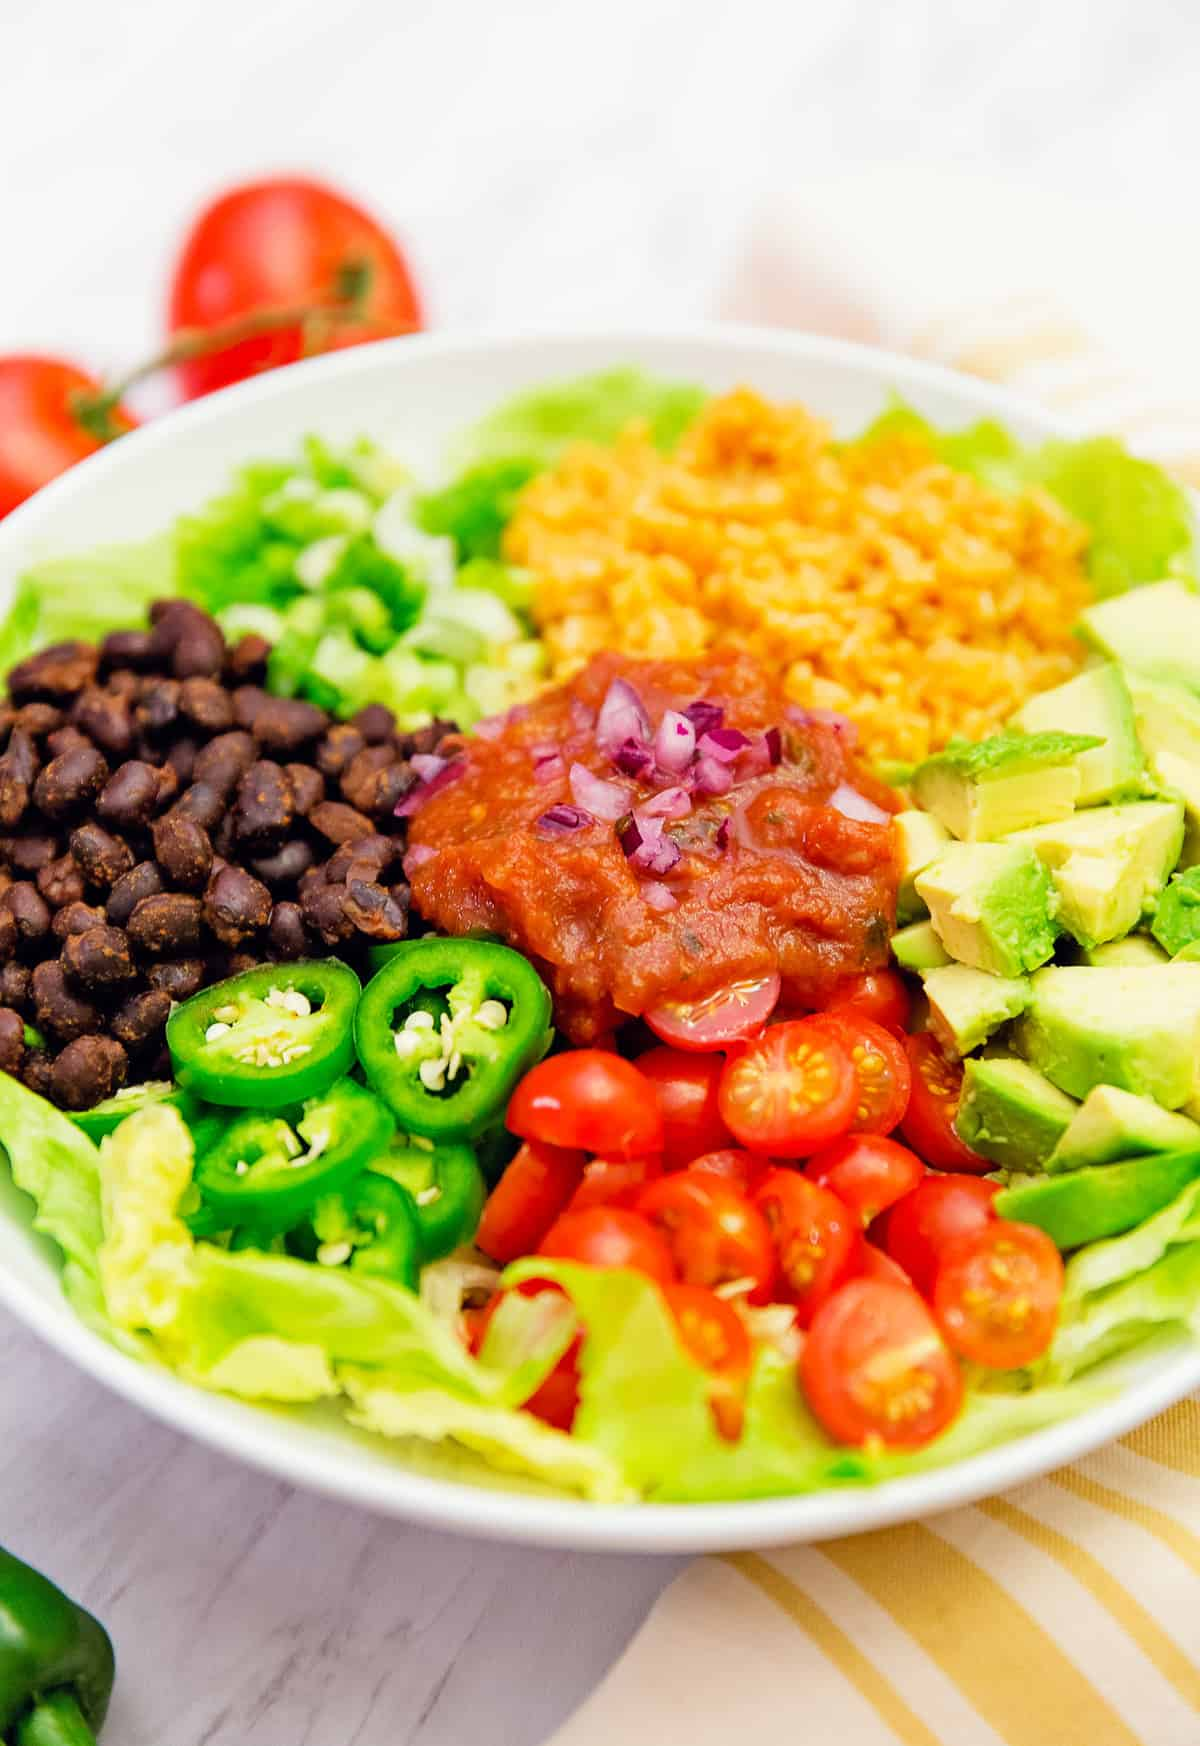 Salsa veggie bowl, veggie bowl, salsa bowl, whole food plant based bowl, recipe, veggie bowl recipe, whole food plant based salad, salsa bowl recipe, vegan, vegan recipe, whole food plant based recipe, whole food plant based, vegetarian, vegetarian recipe, gluten free, gluten free recipe, vegan dinner, vegan lunch, vegan meals, vegetarian dinner, vegetarian lunch, vegetarian meal, whole food plant based dinner, whole food plant based lunch, whole food plant based meal, gluten free dinner, gluten free lunch, gluten free meal, healthy, oil free, no oil, red onions, black beans, lettuce, salad, corn, Mexican rice, Spanish rice, rice, black beans, green onions, tomatoes, jalapeño, quick dinner, avocado, salsa dressing, fast dinner, entertaining, wfpb, dairy free, no dairy, traditional, Mexican, Southwestern, classic, delicious, the best, winter, fall, spring, summer, fast, easy, quick, simple, 30 minutes,